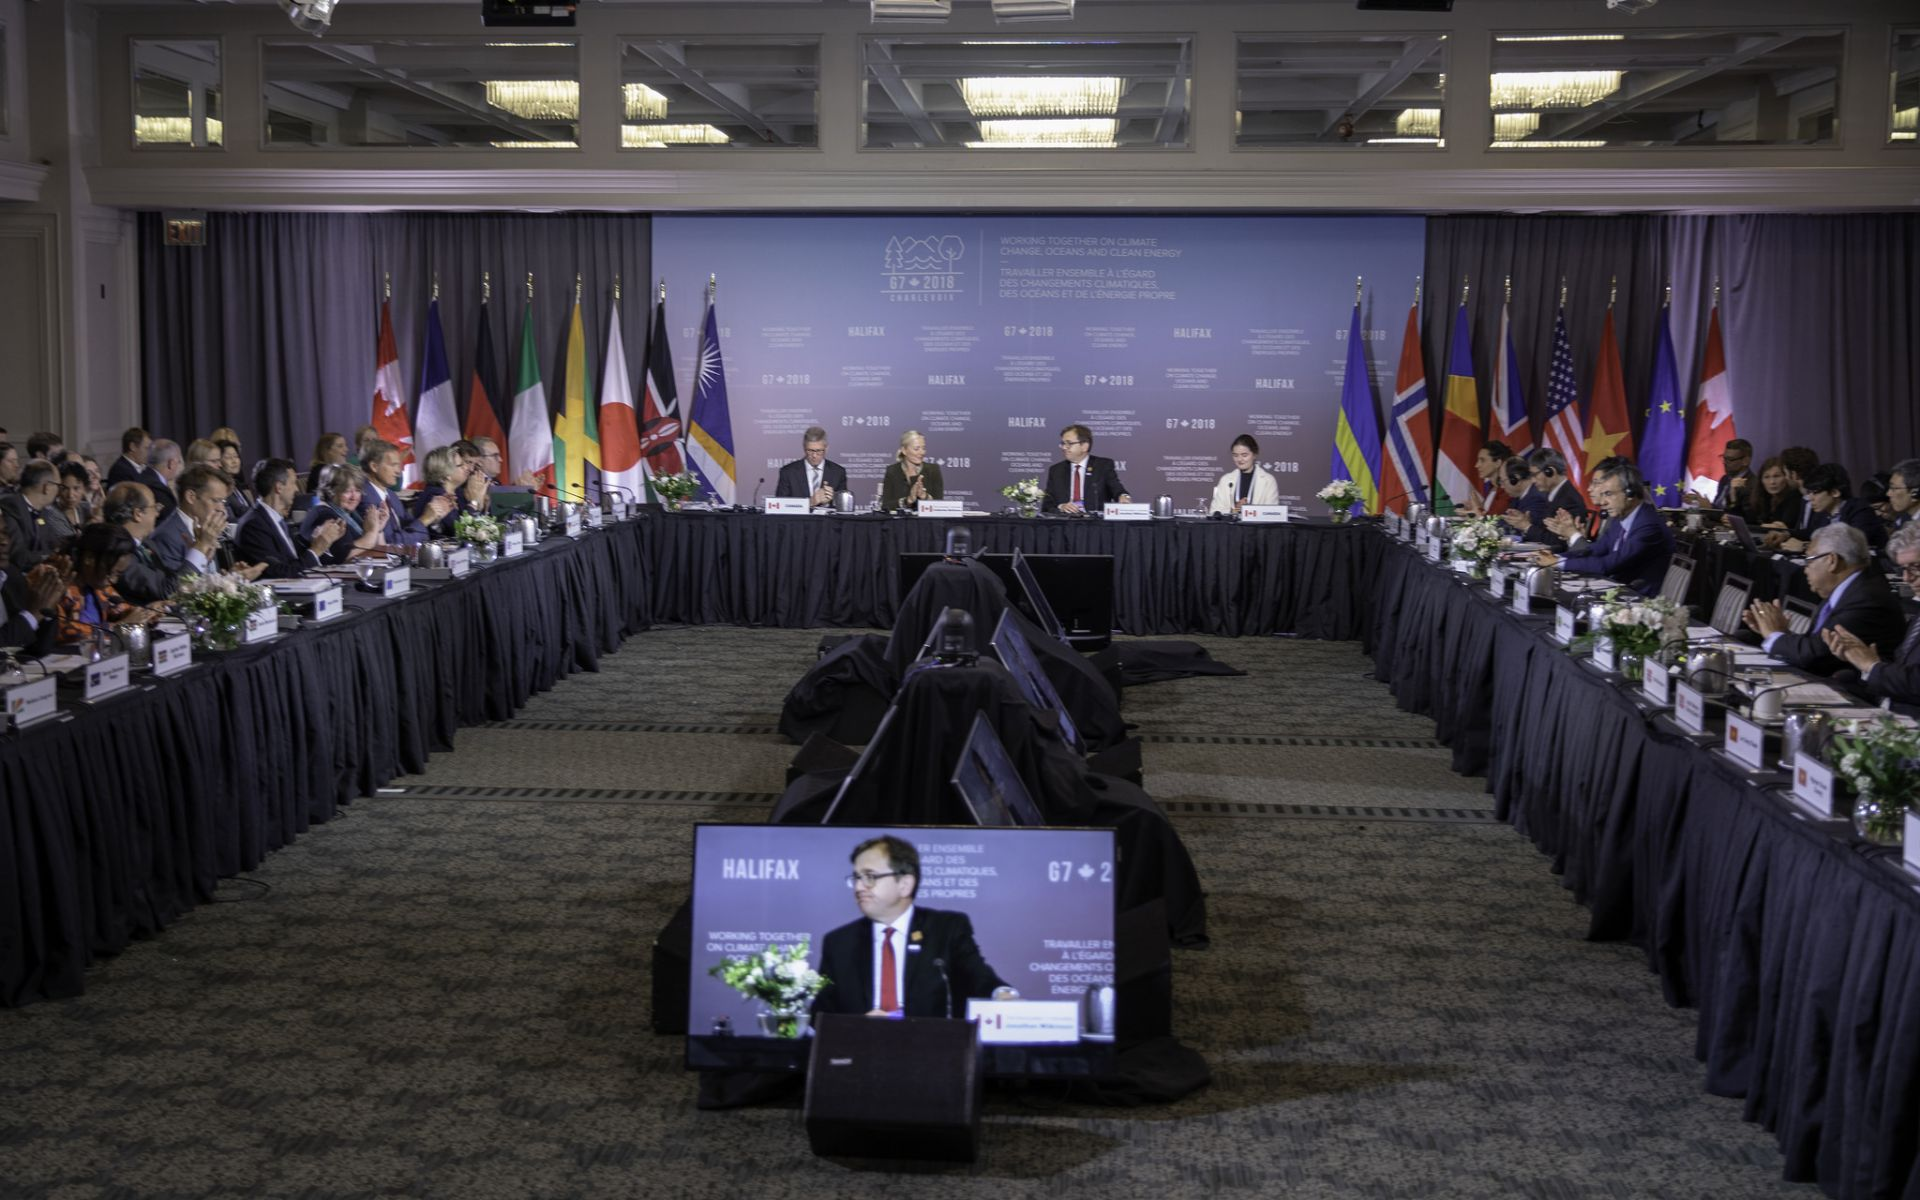 Official photo_Source: #G7Charlevoix on Flick